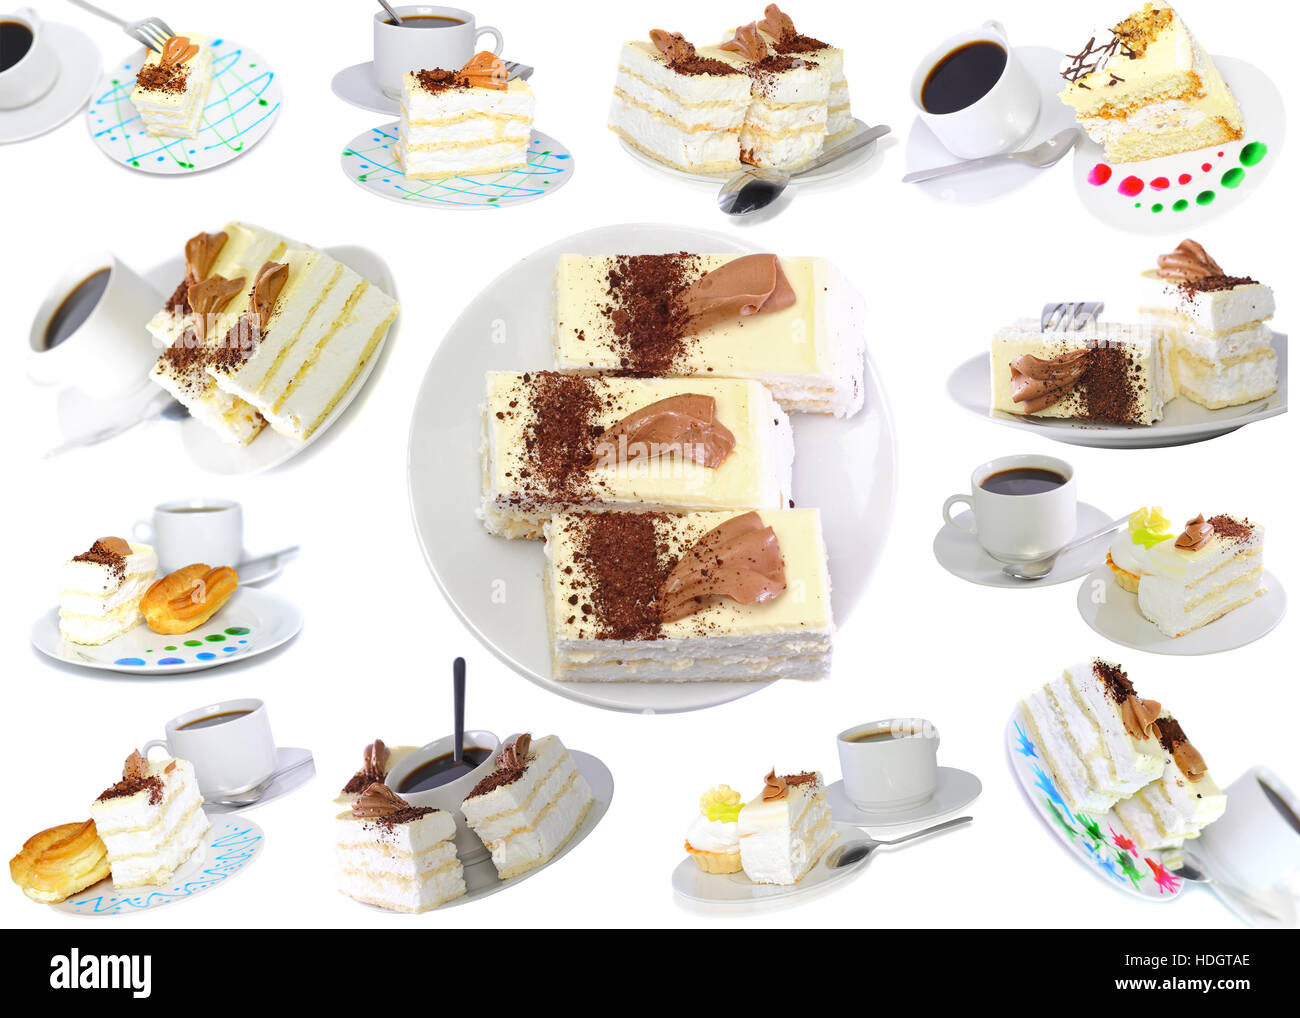 Collection-various cakes on plate with fruits, strawberrys. Isolated - Stock Image